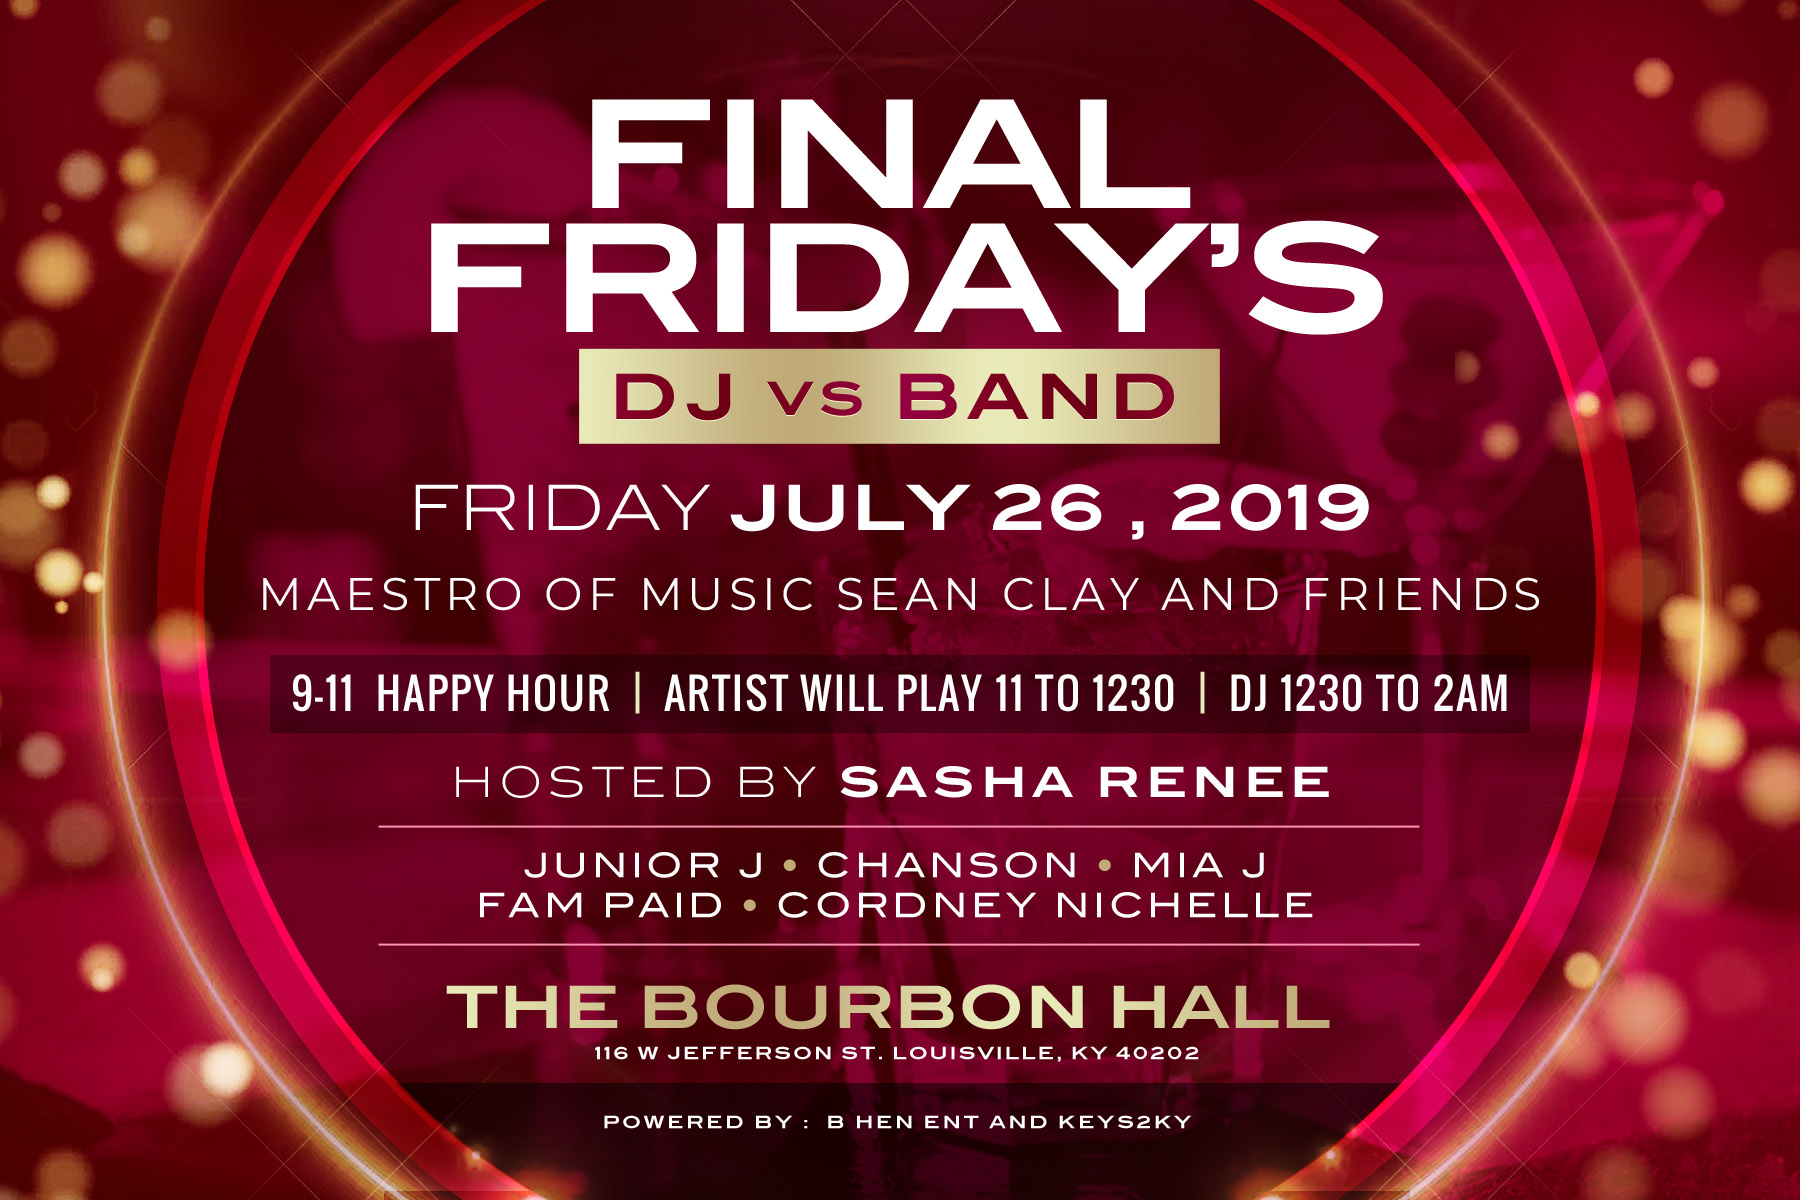 Final Friday's DJ vs Band